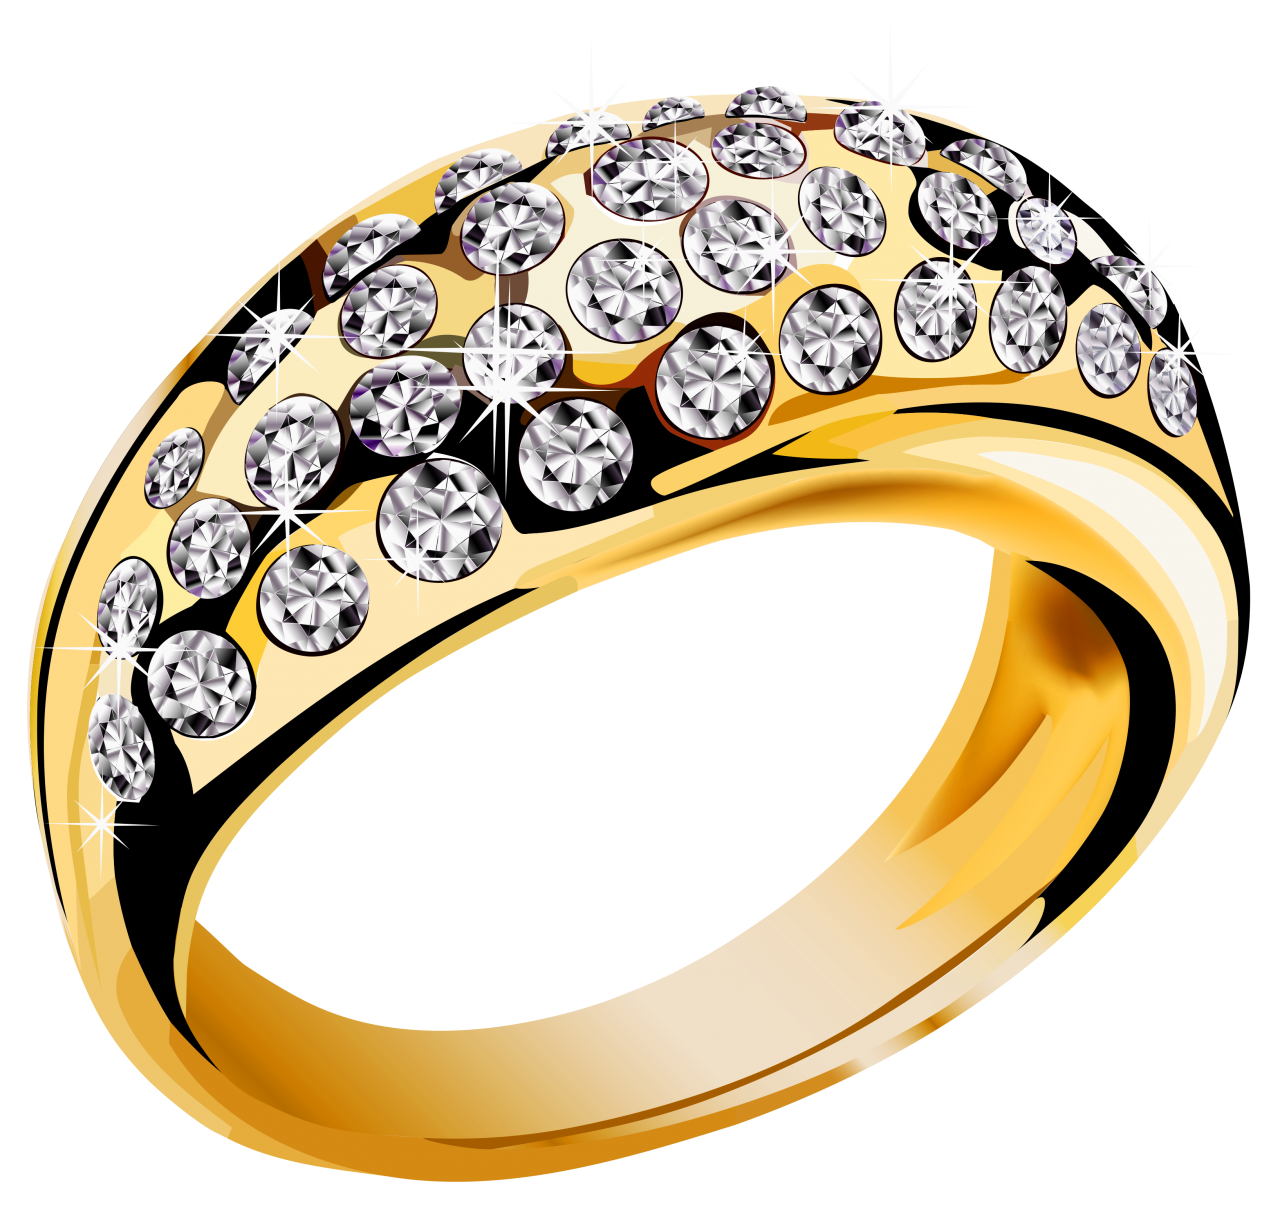 Gold Ring With Diamonds PNG Image